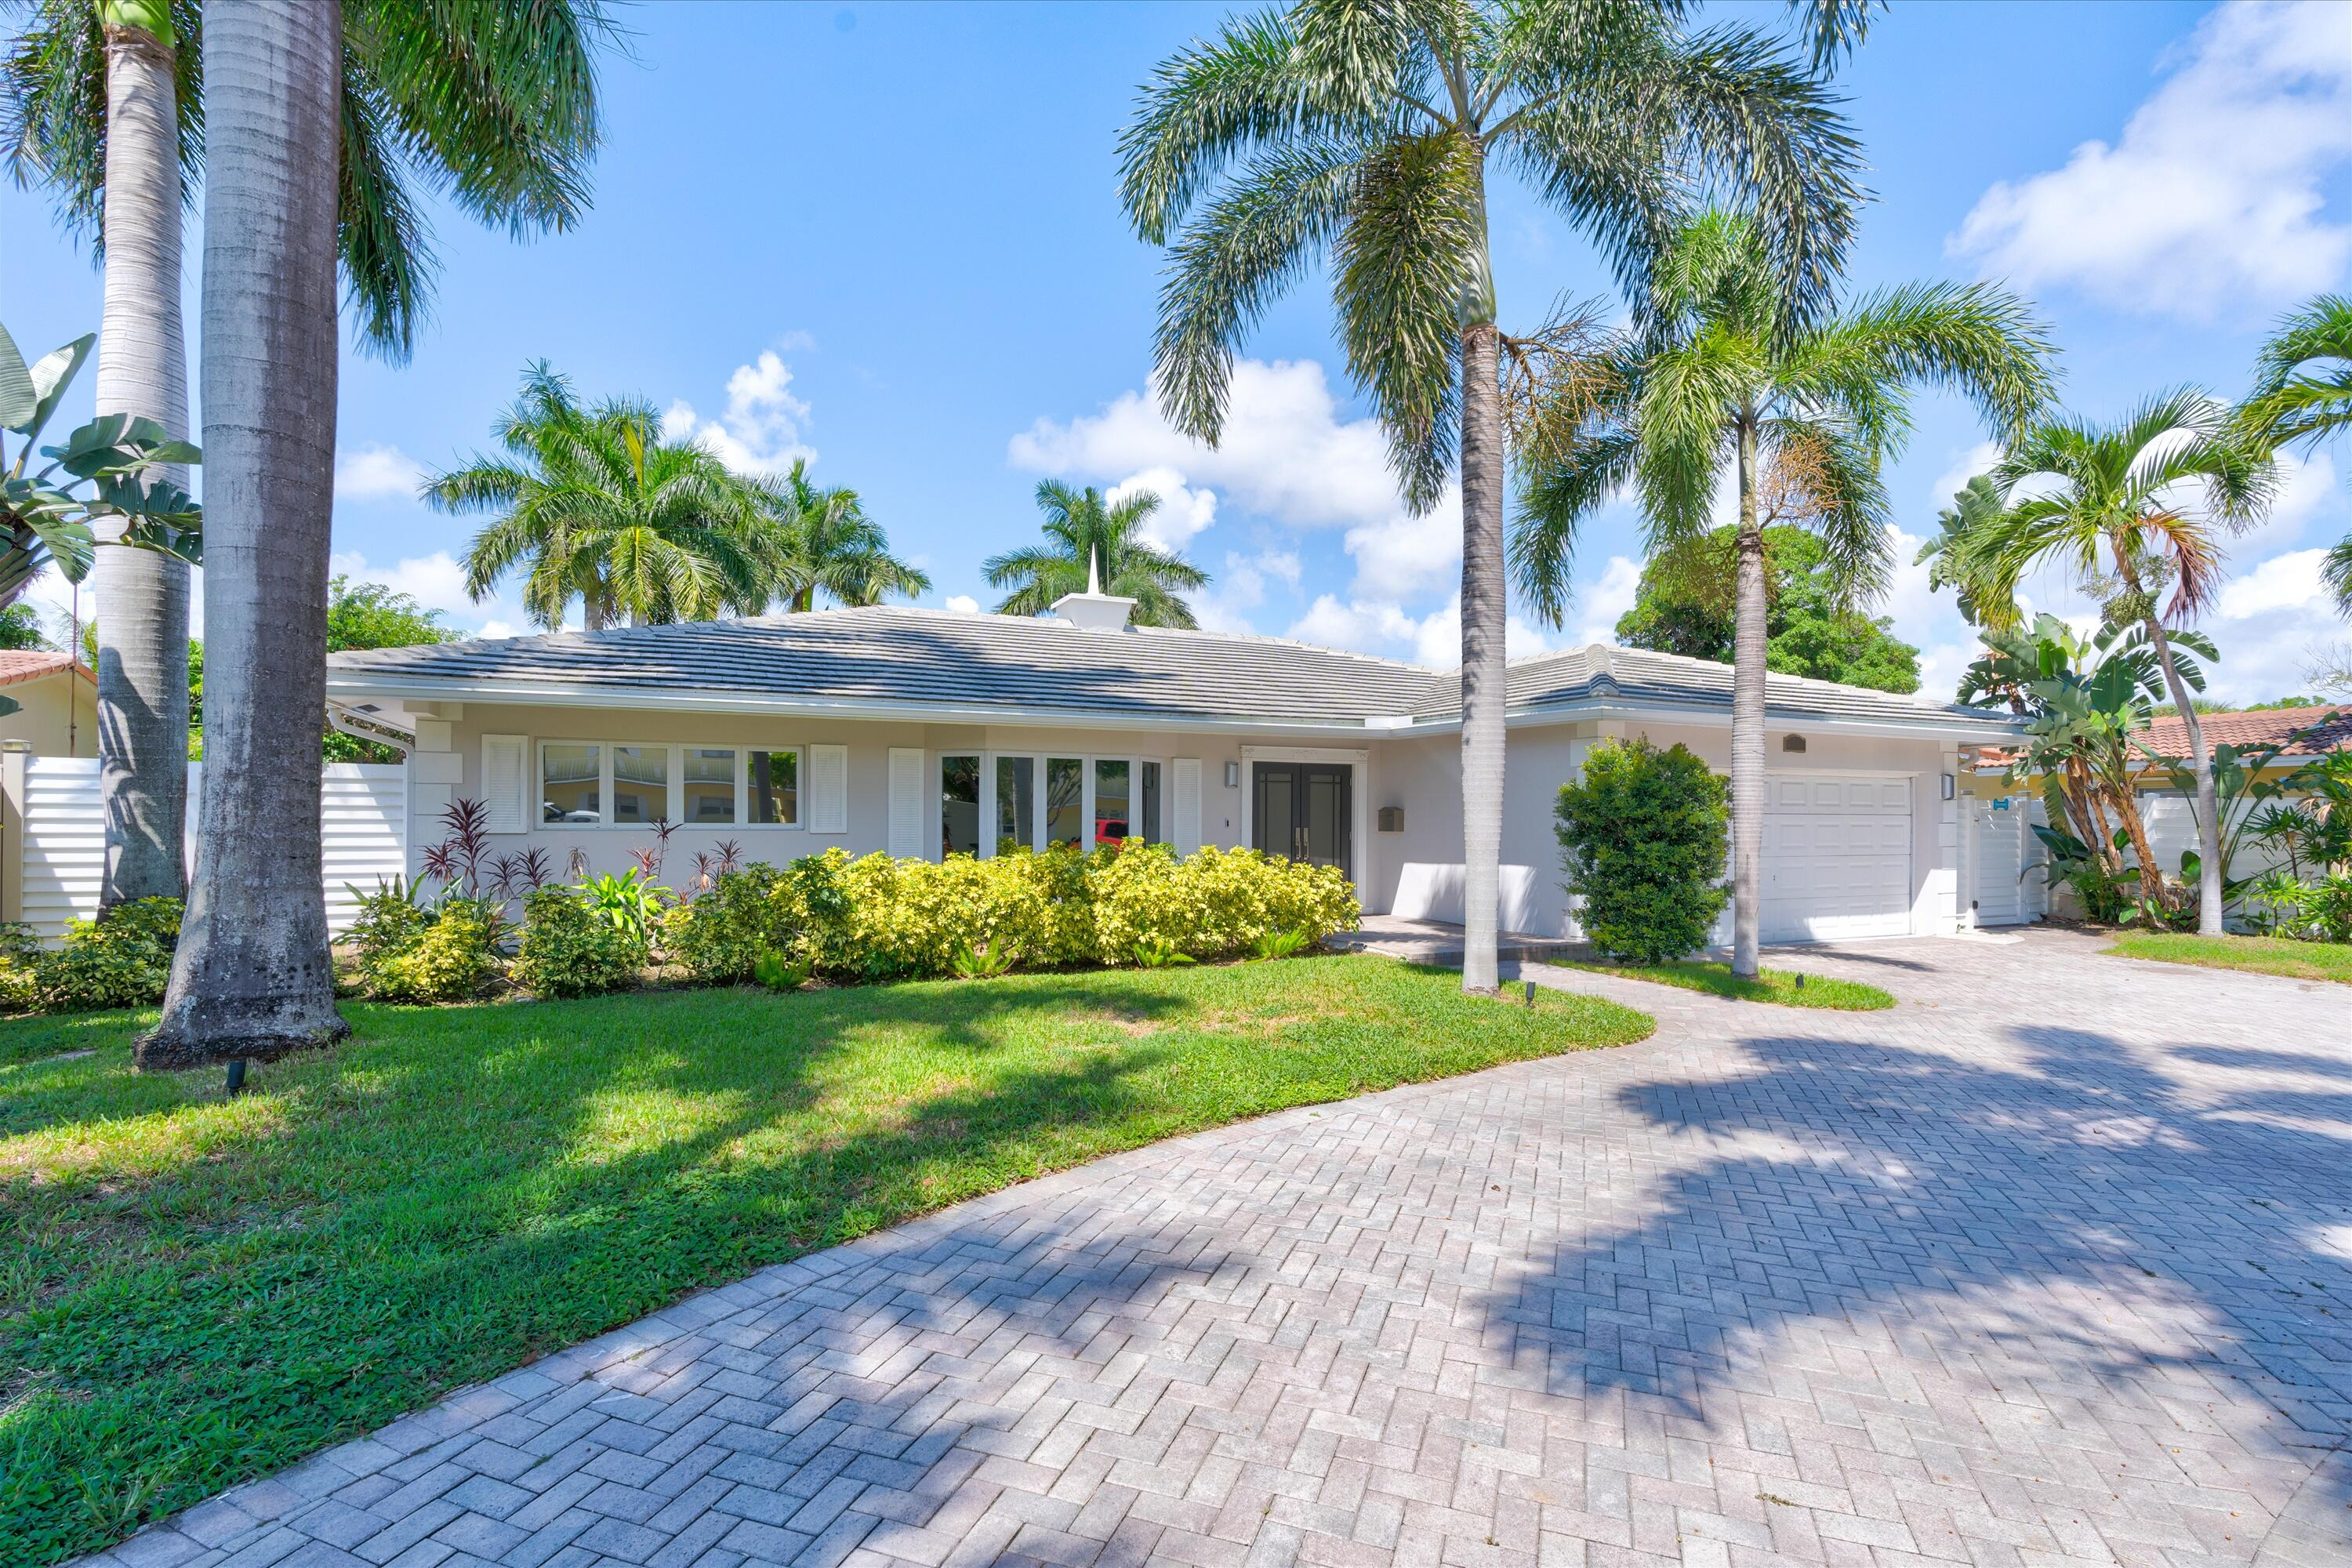 Fabulous Location!!!!! Close to Restaurants, Shopping, and walking distance to the beach and Lauderdale by the Sea. Beautiful heated salt water pool. Full house generator installed in 2018! Hurricane impact windows and doors for full credit and new roof in 2018. Brand new kitchen installed in 2018 with all new Wolf appliances and new Subzero refrigerator. Brand new electrical panel. The actual square footage on the tax roll is incorrect. The home is just over 2200 sq. ft under air. Showings begin Sunday September 19,2021 for the OPEN HOUSE from noon-4pm.